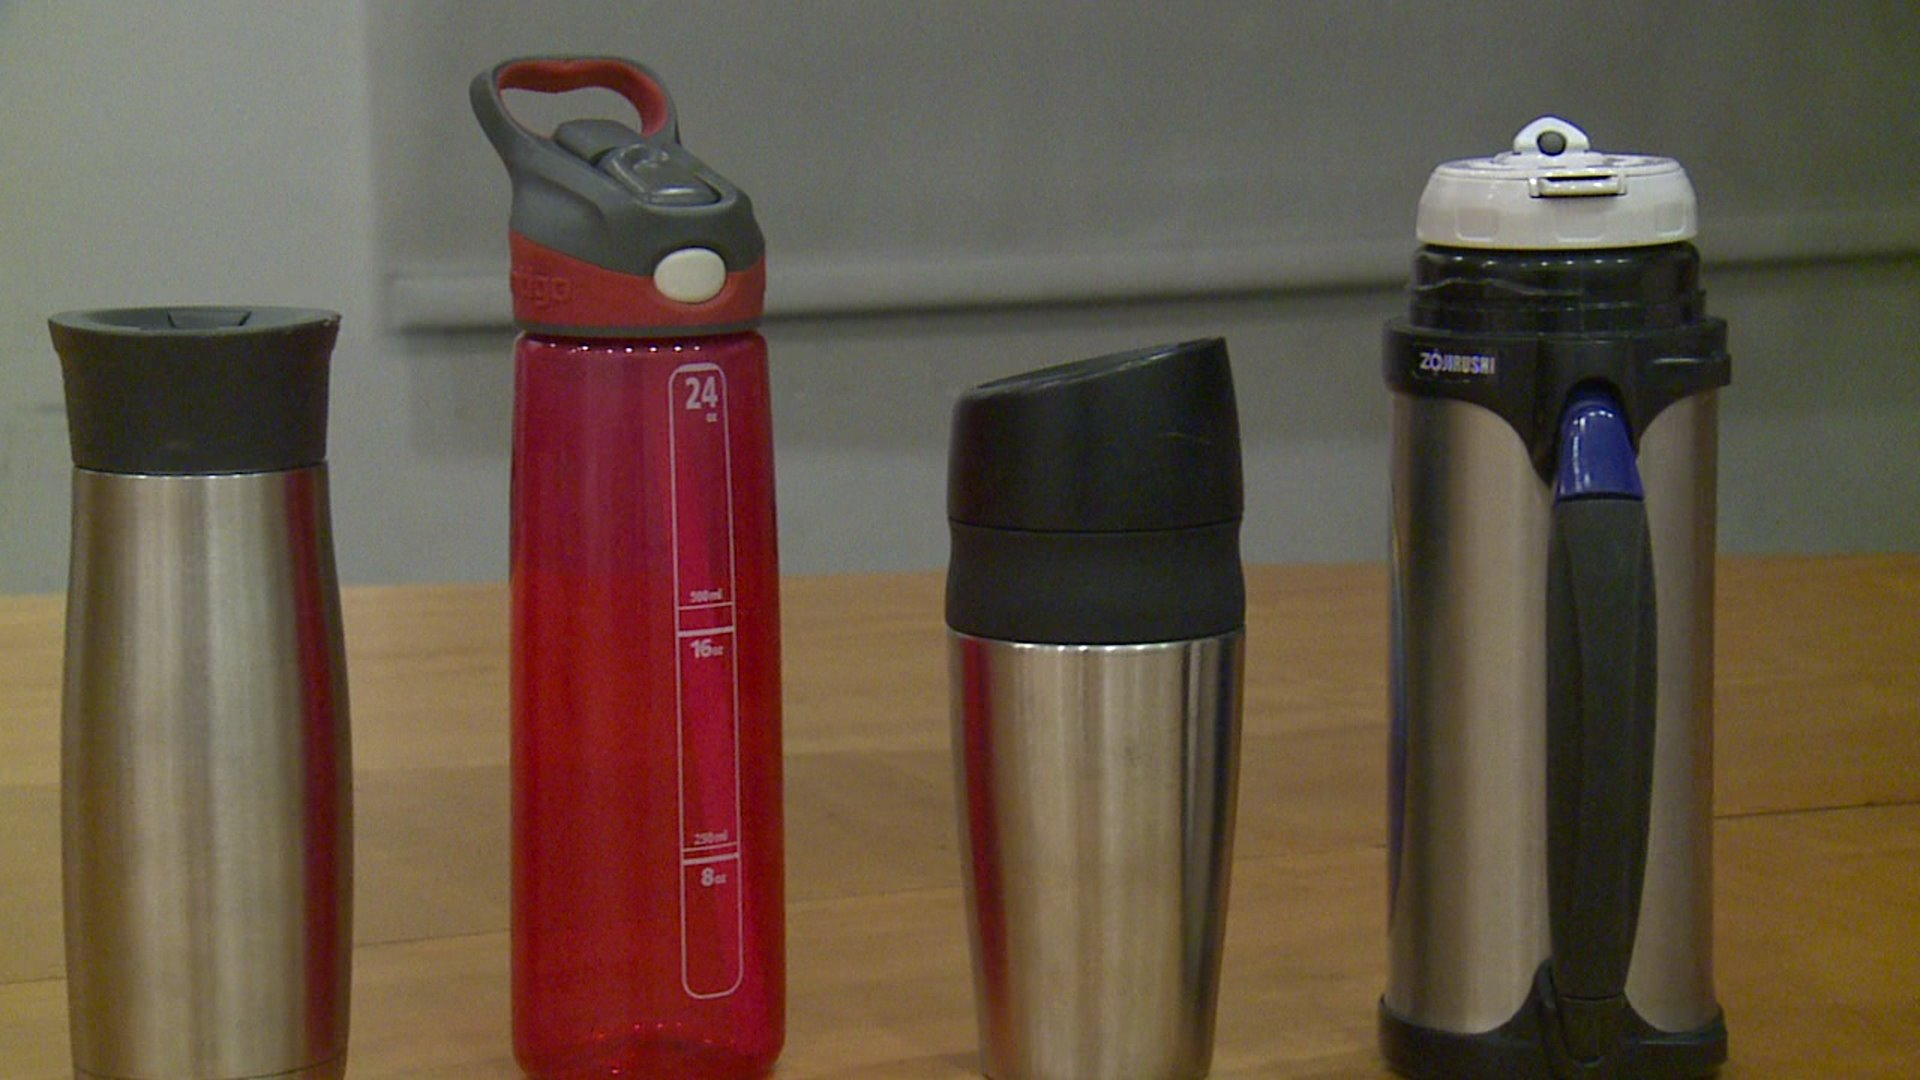 Shocking Amount of Mold Found in Travel Mugs